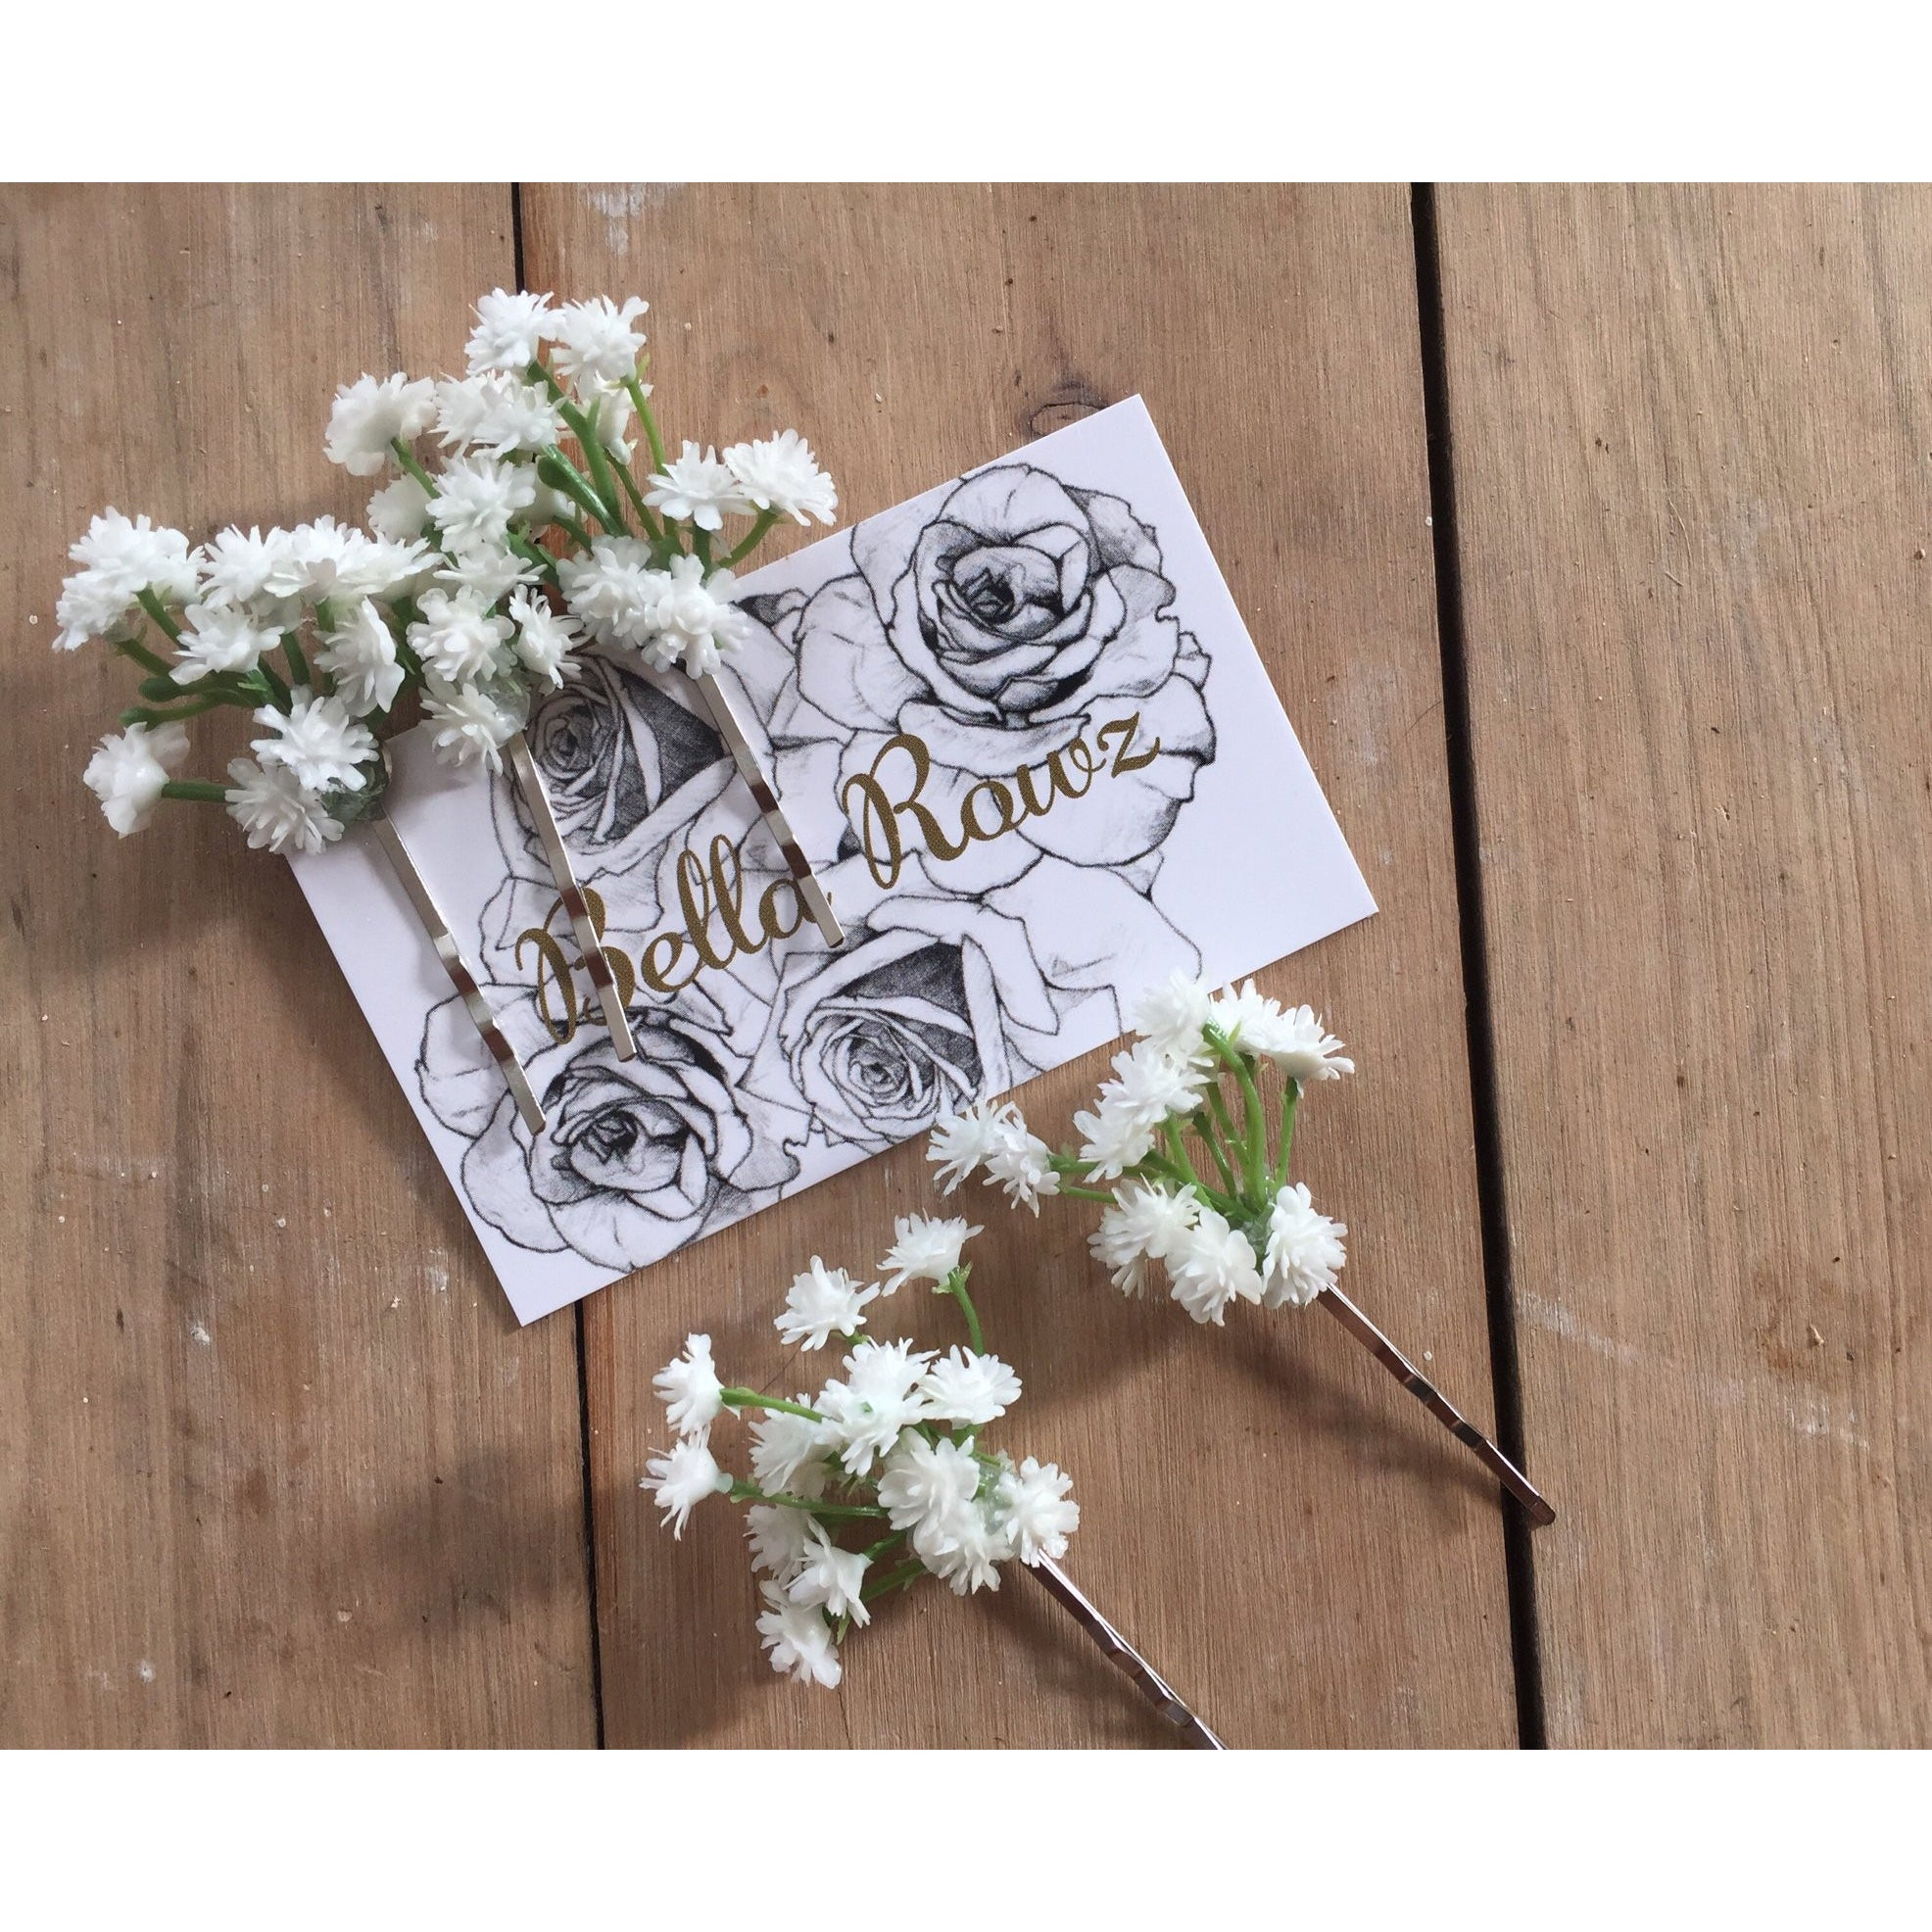 Babys breath hair pins.